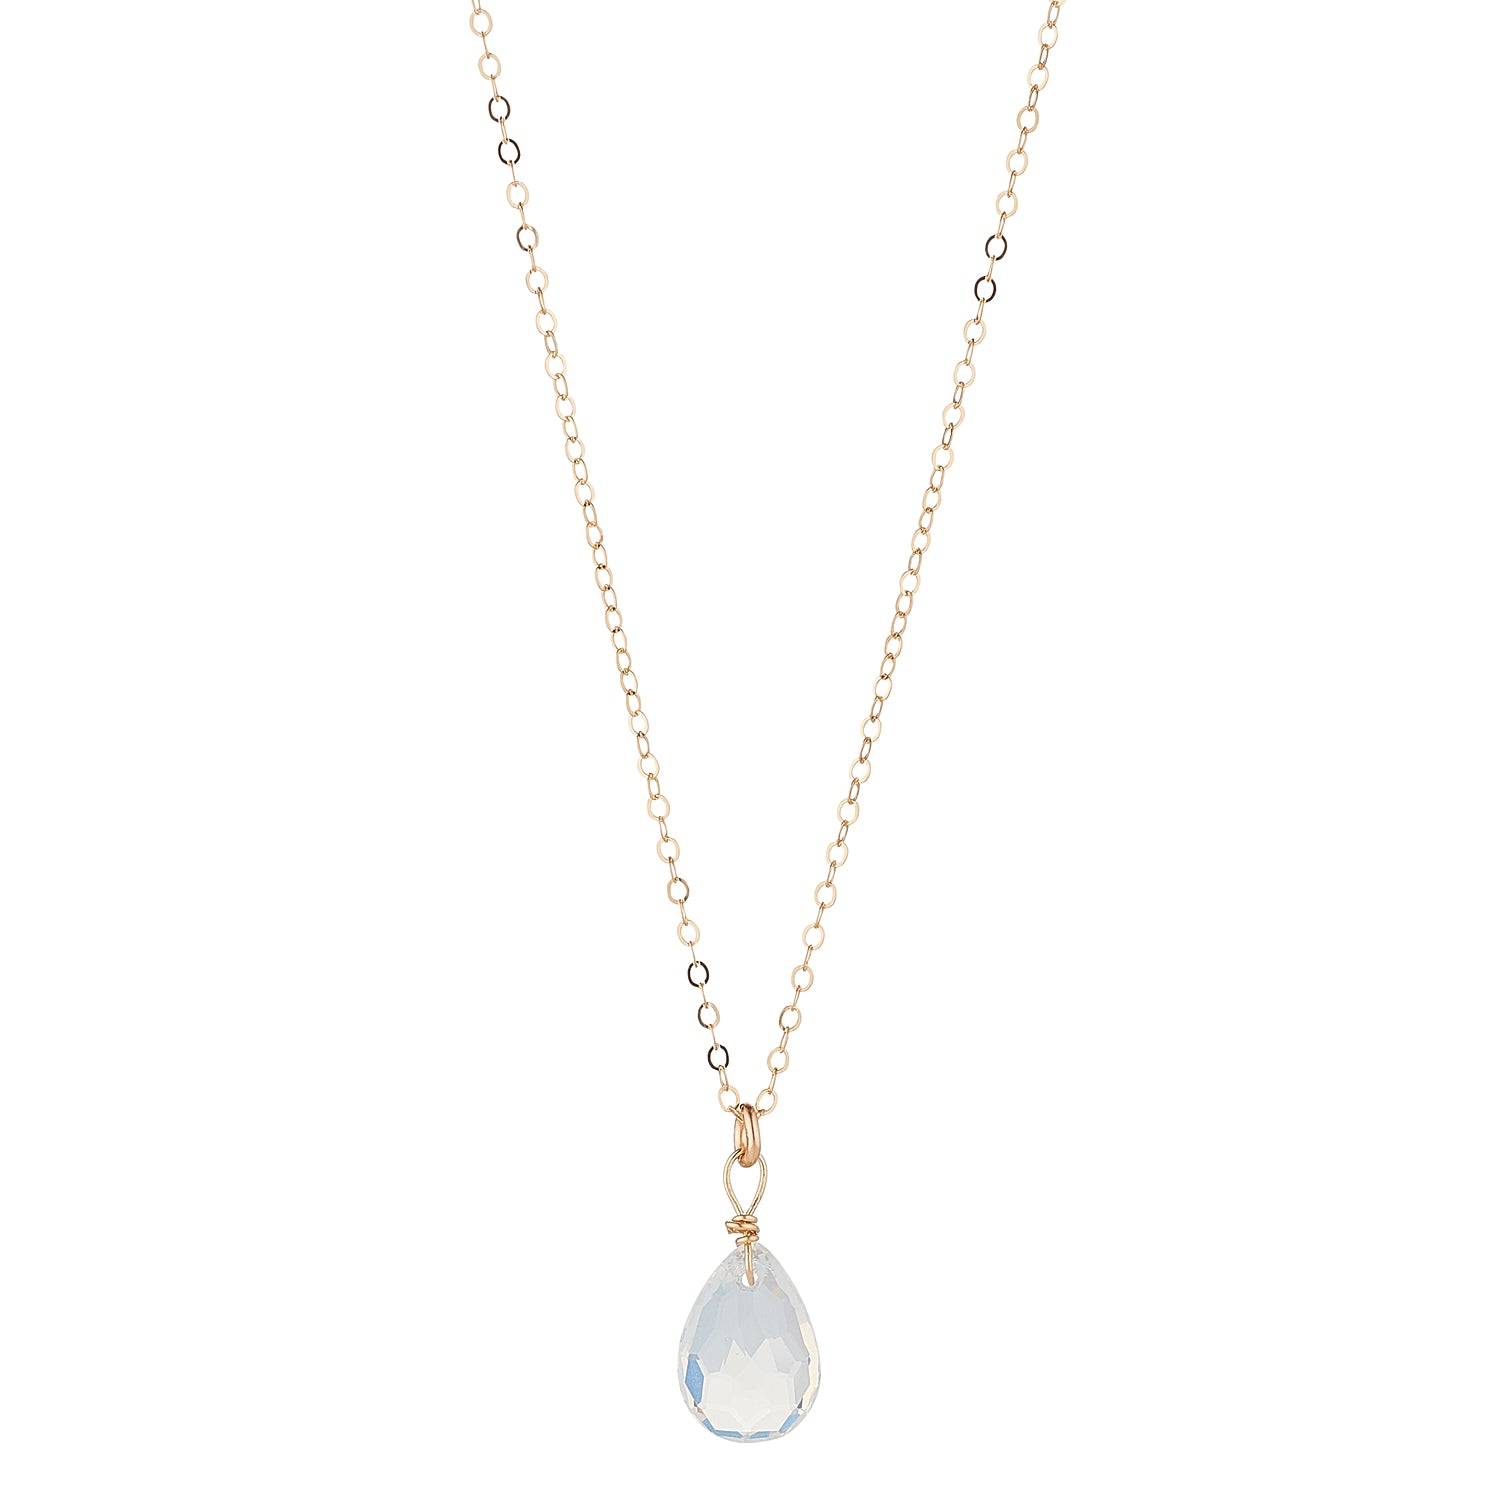 14kt Gold Filled Opaque Swarovski Teardrop Pendant - MoMuse Jewellery